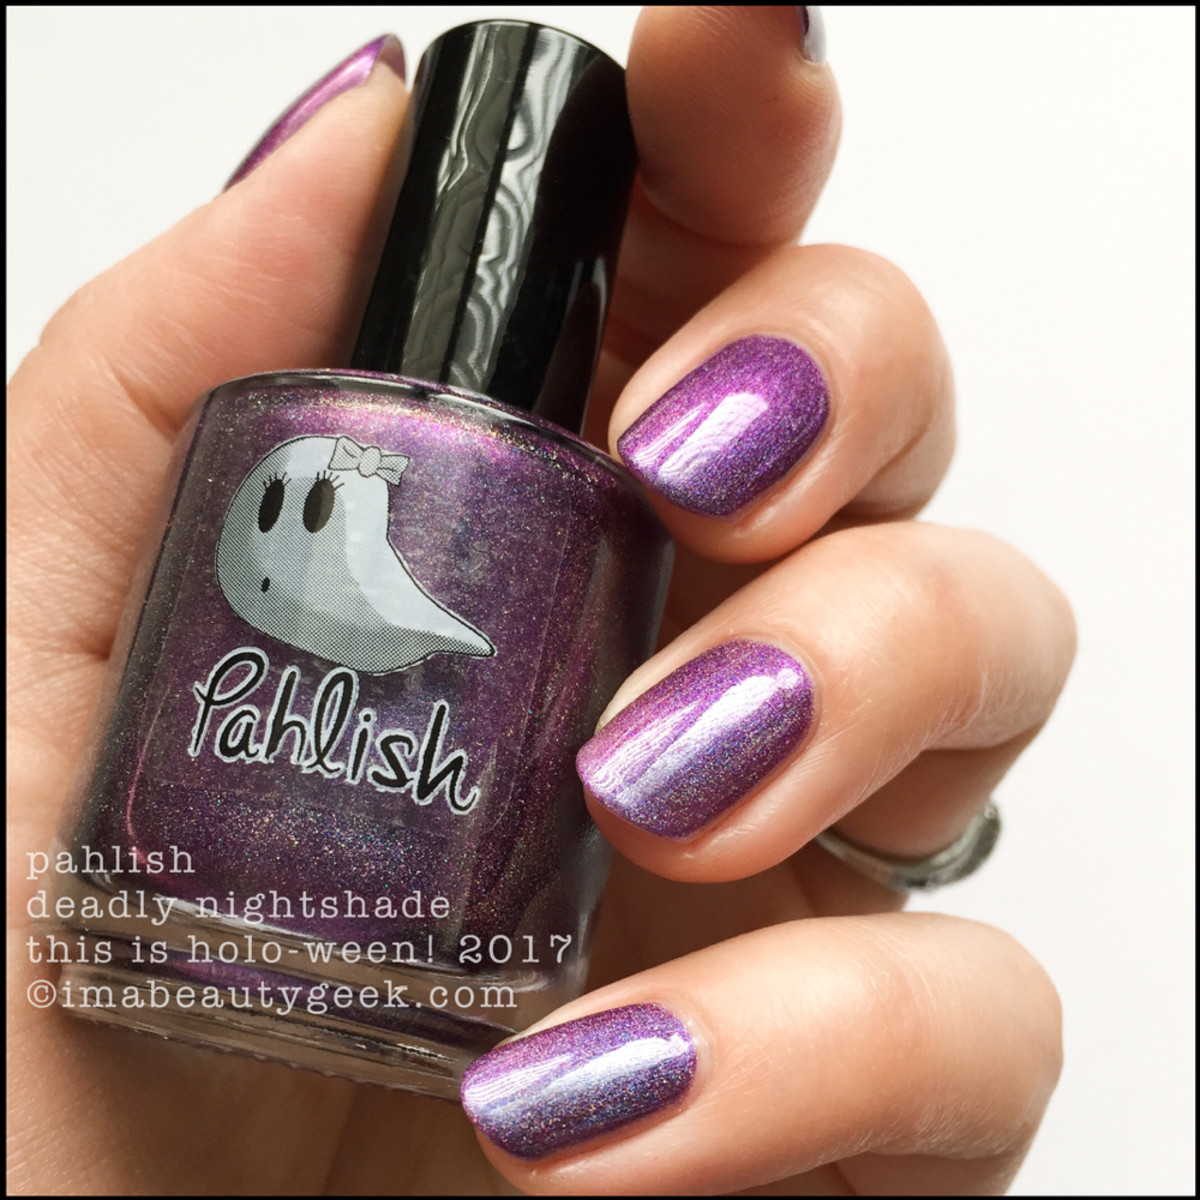 Pahlish Deadly Nightshade - This is Holo-ween! 2017